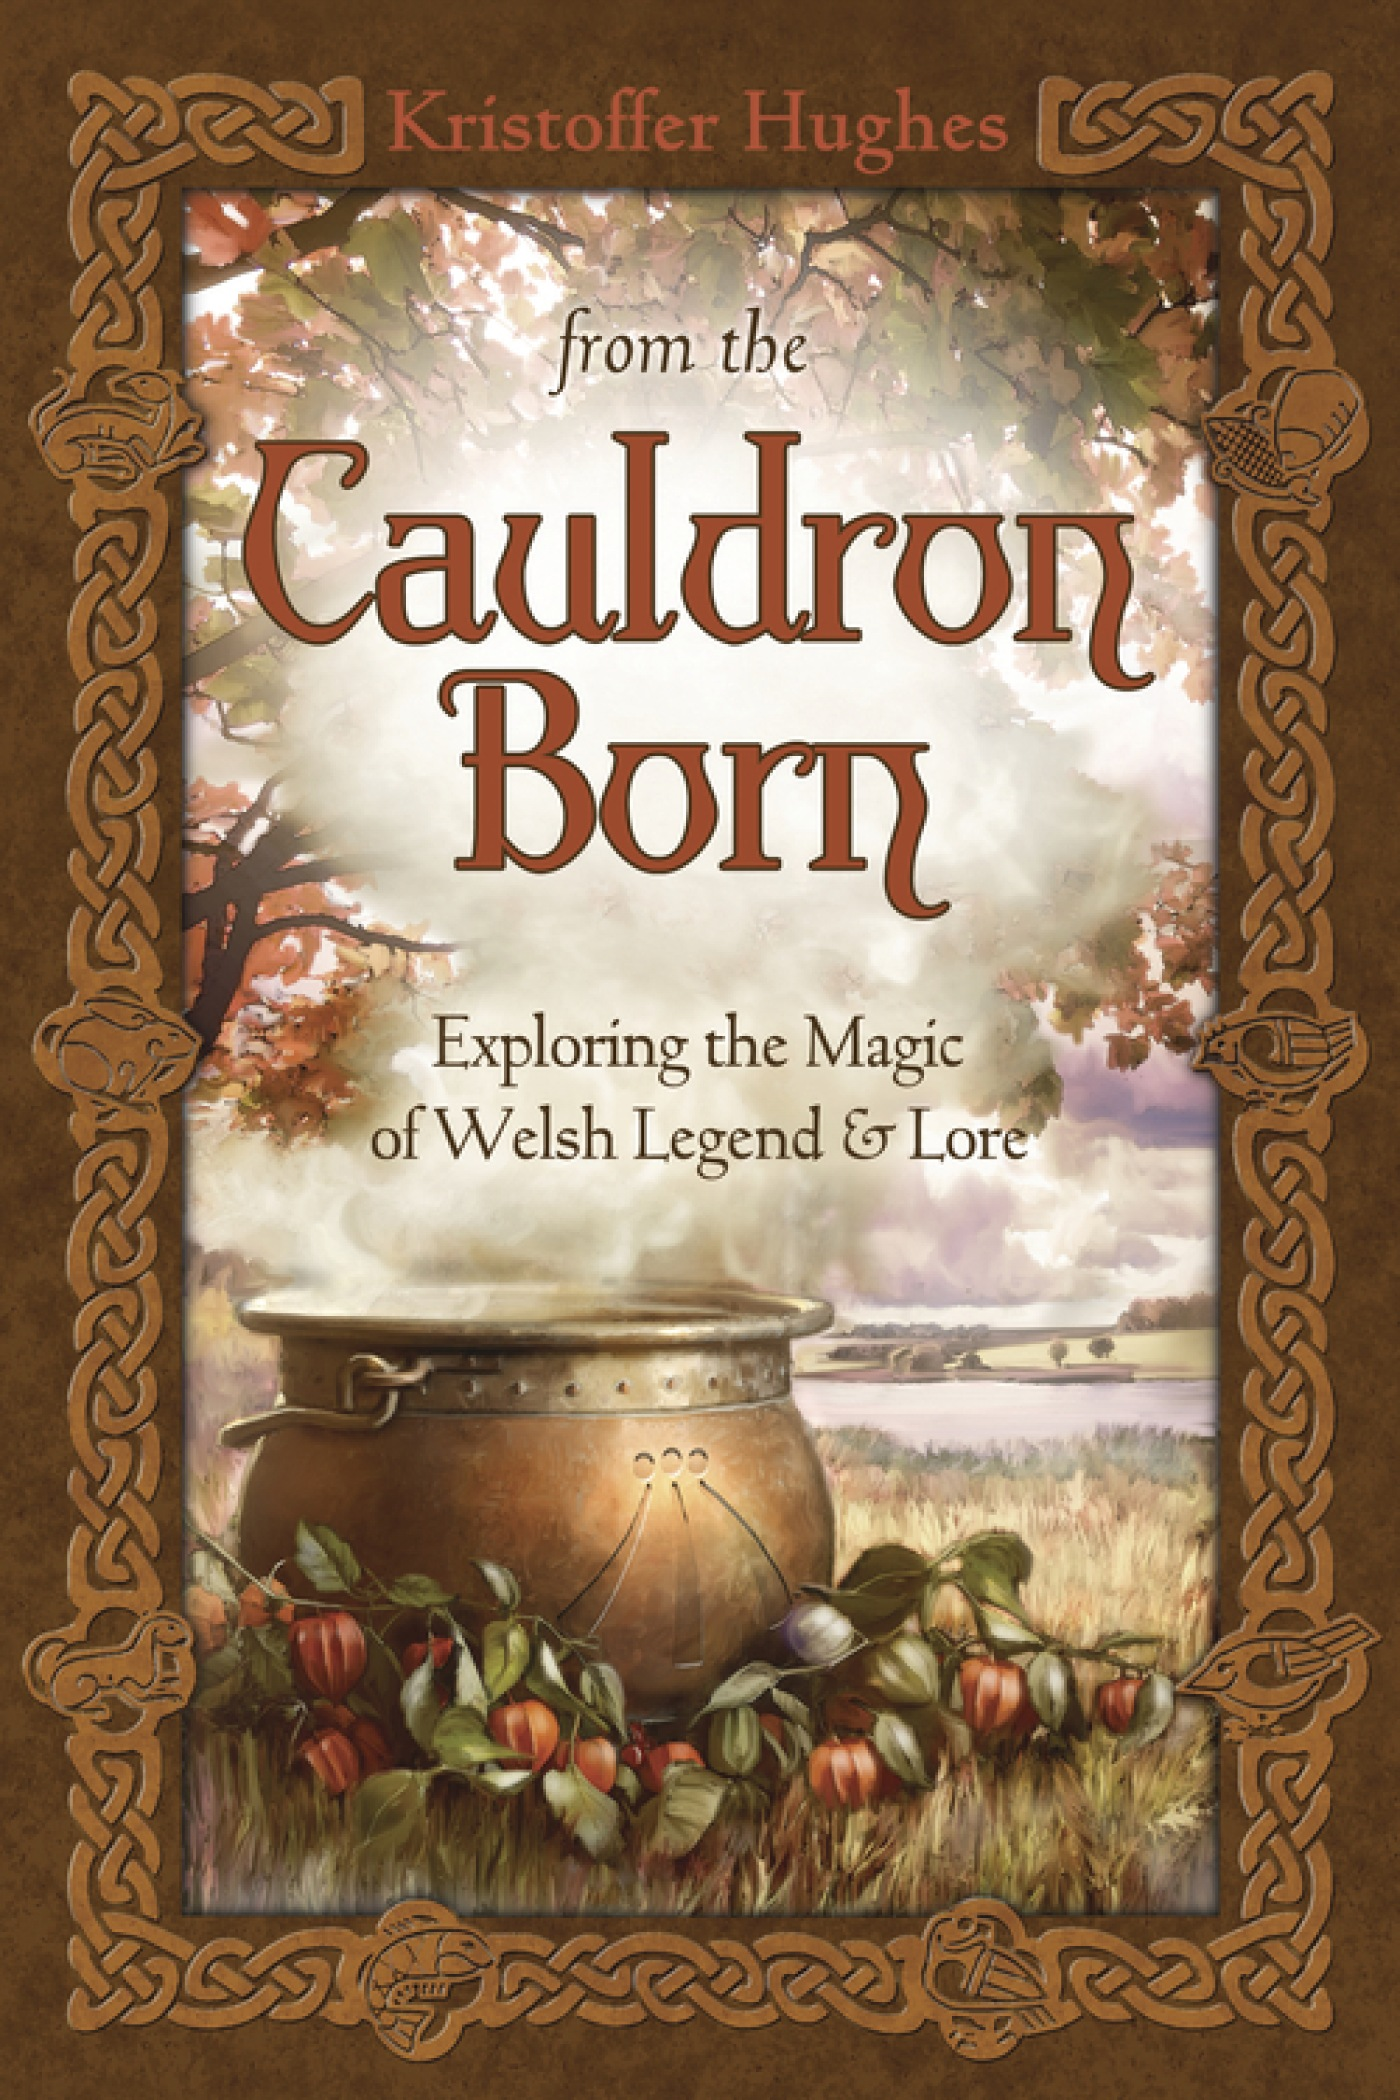 From the Cauldron Born Exploring the Magic of Welsh Legend & Lore